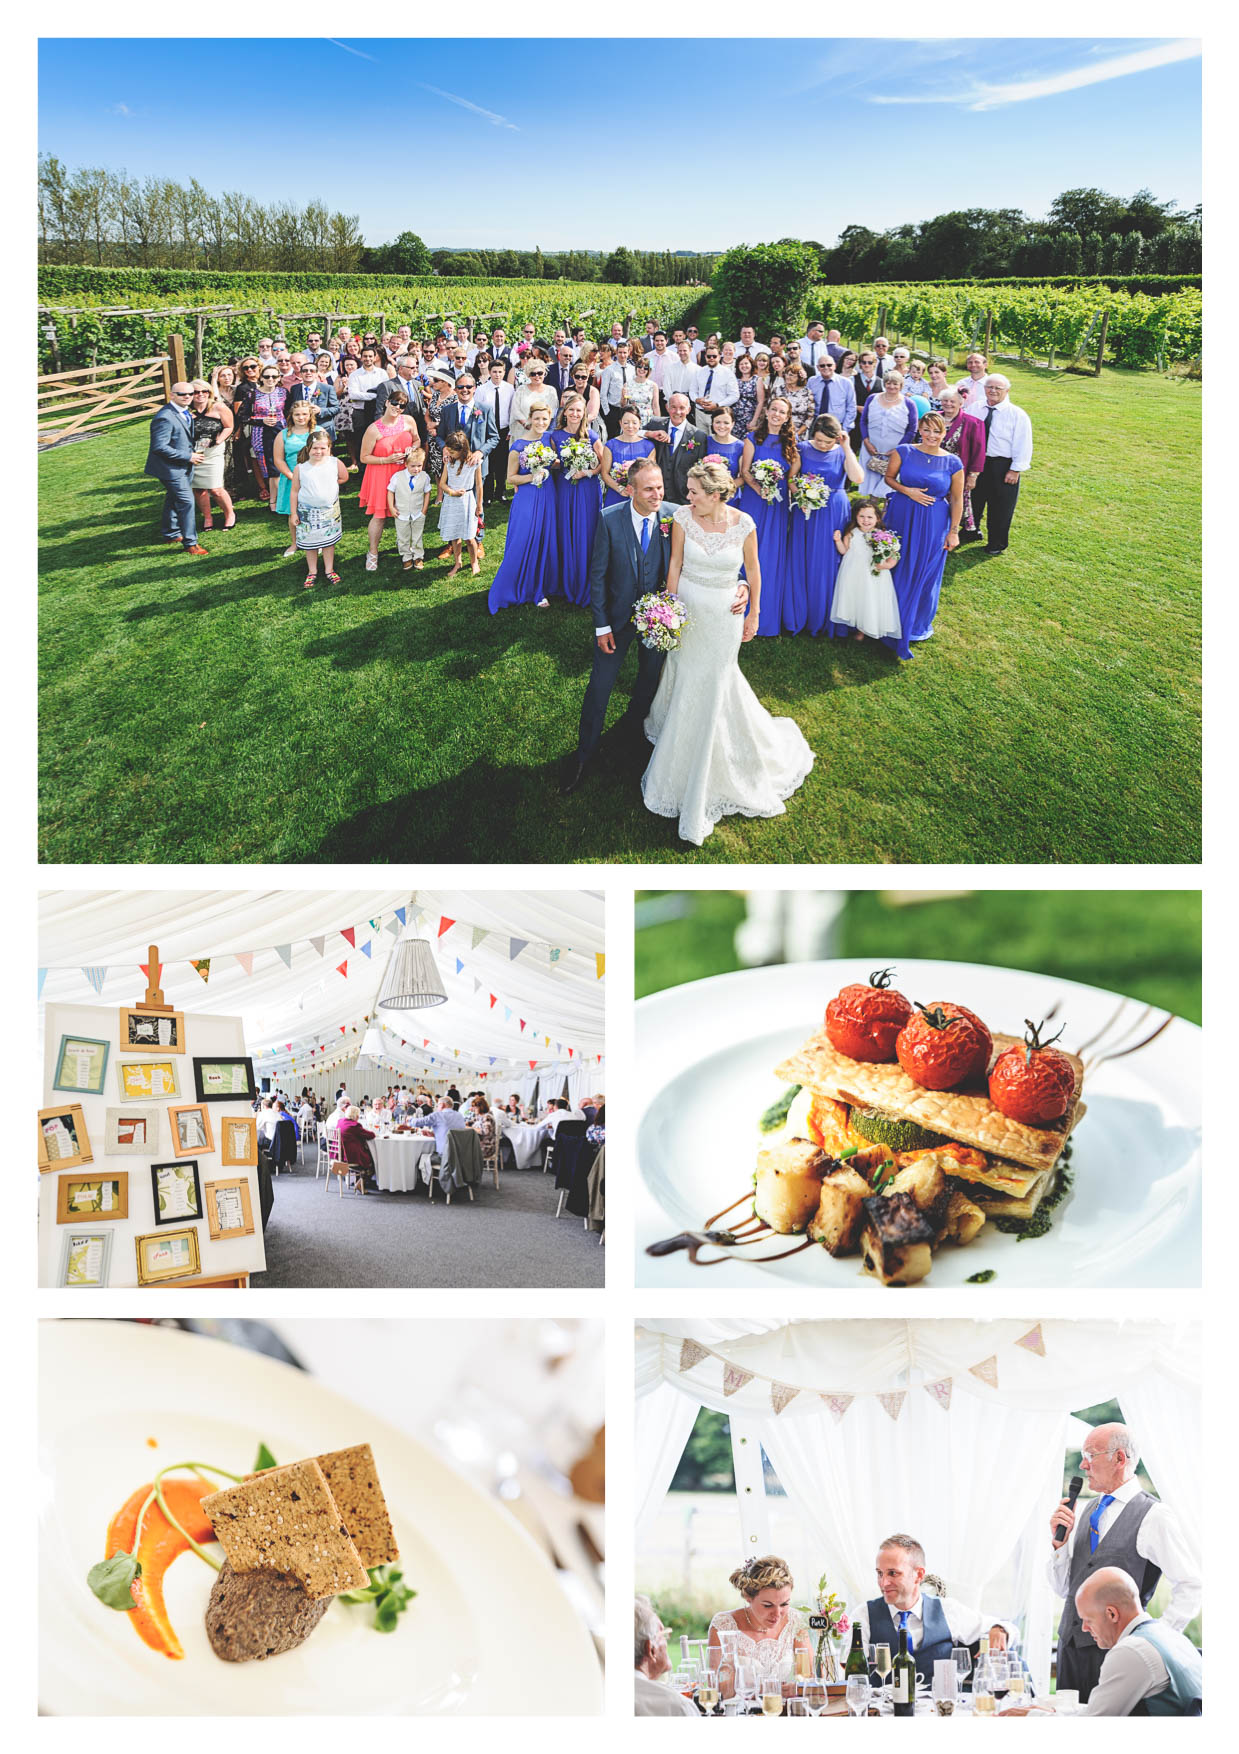 A group photo at llanerch vineyard of a wedding and food photography by owen mathias